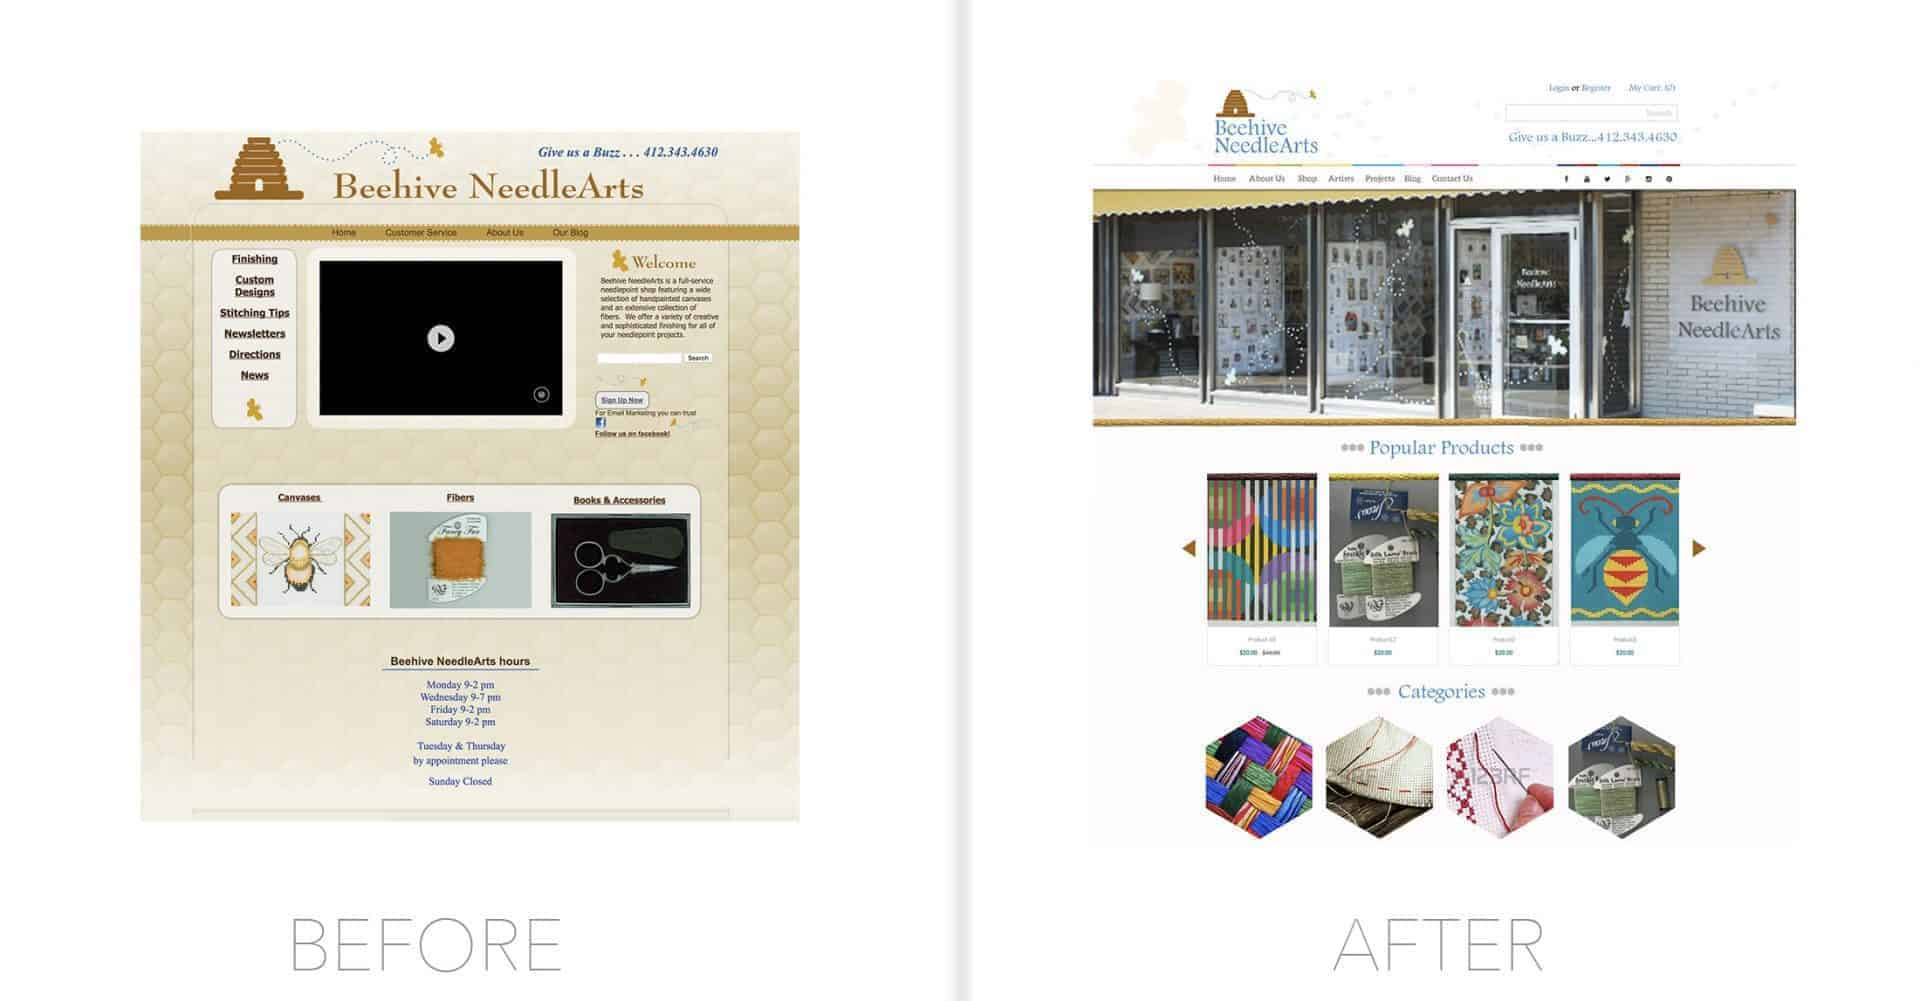 Beehive NeedleArts Website Design